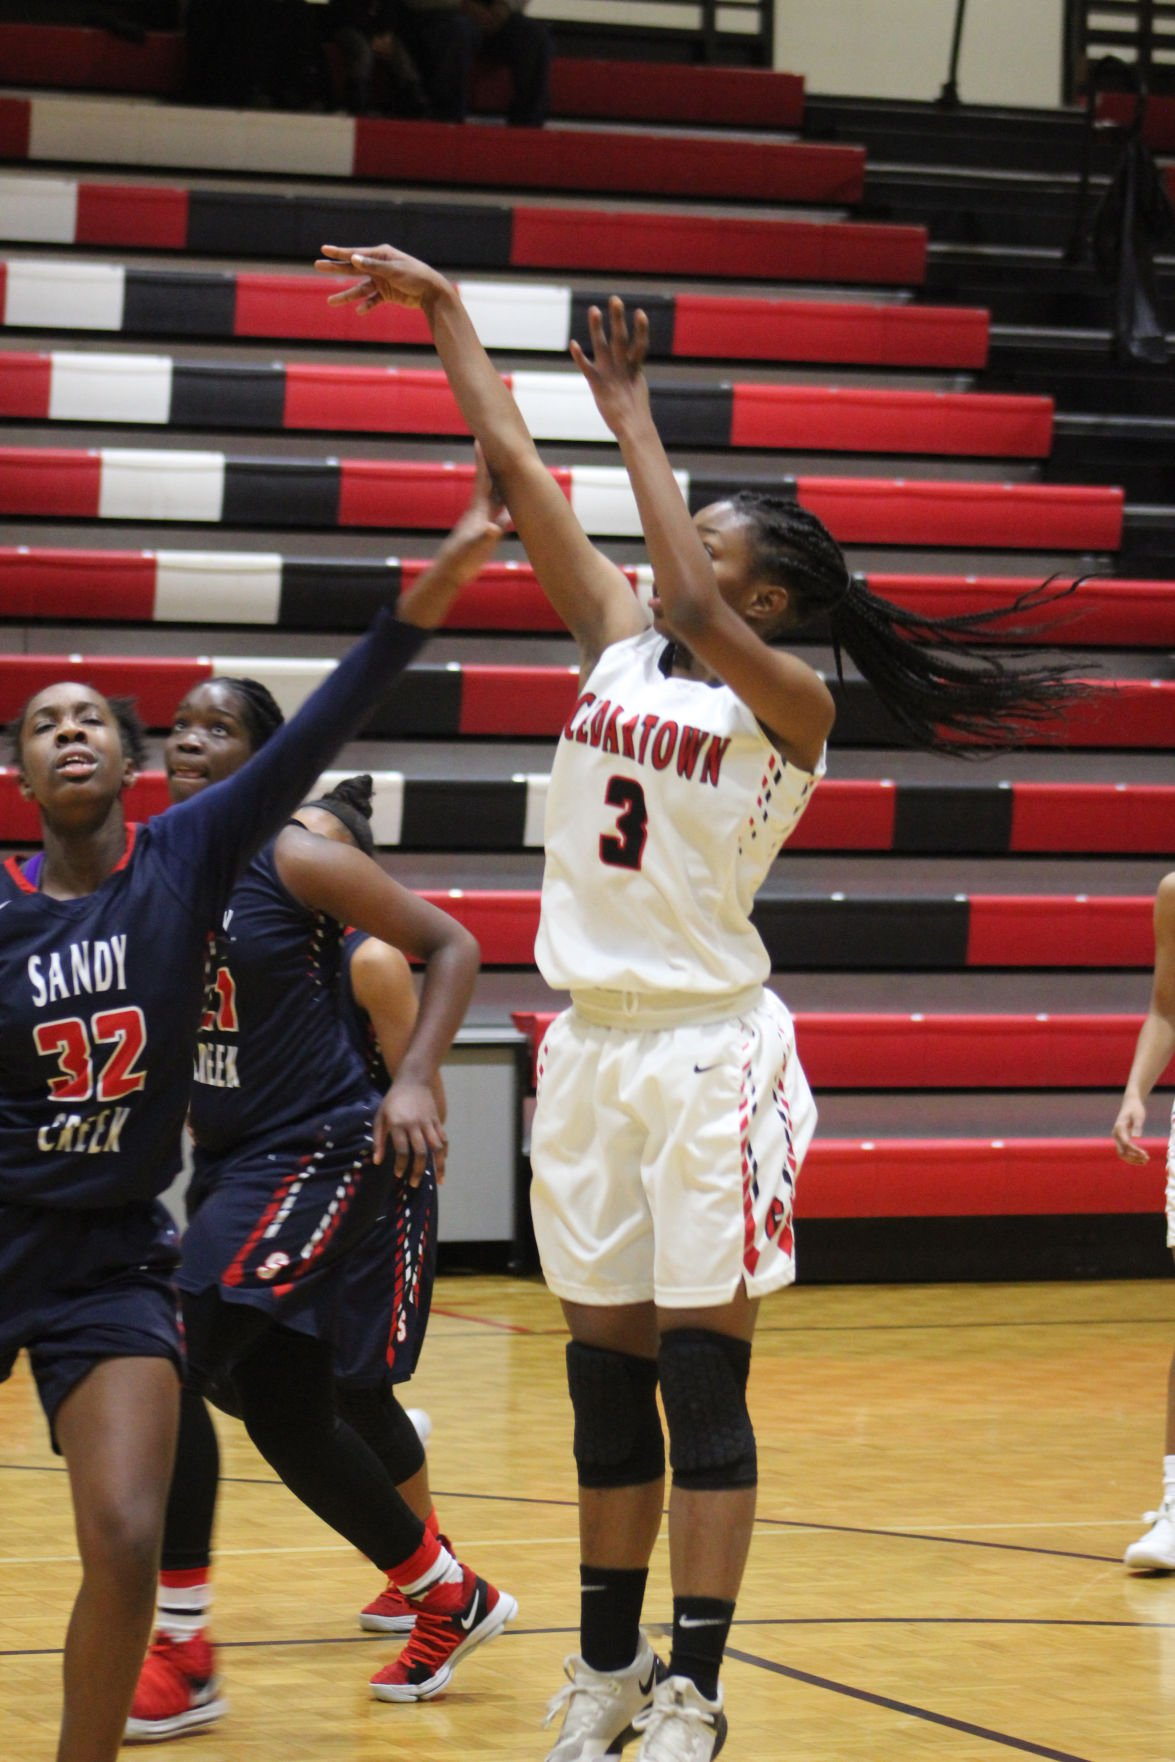 Cedartown girls basketball - Jan. 13, 2018